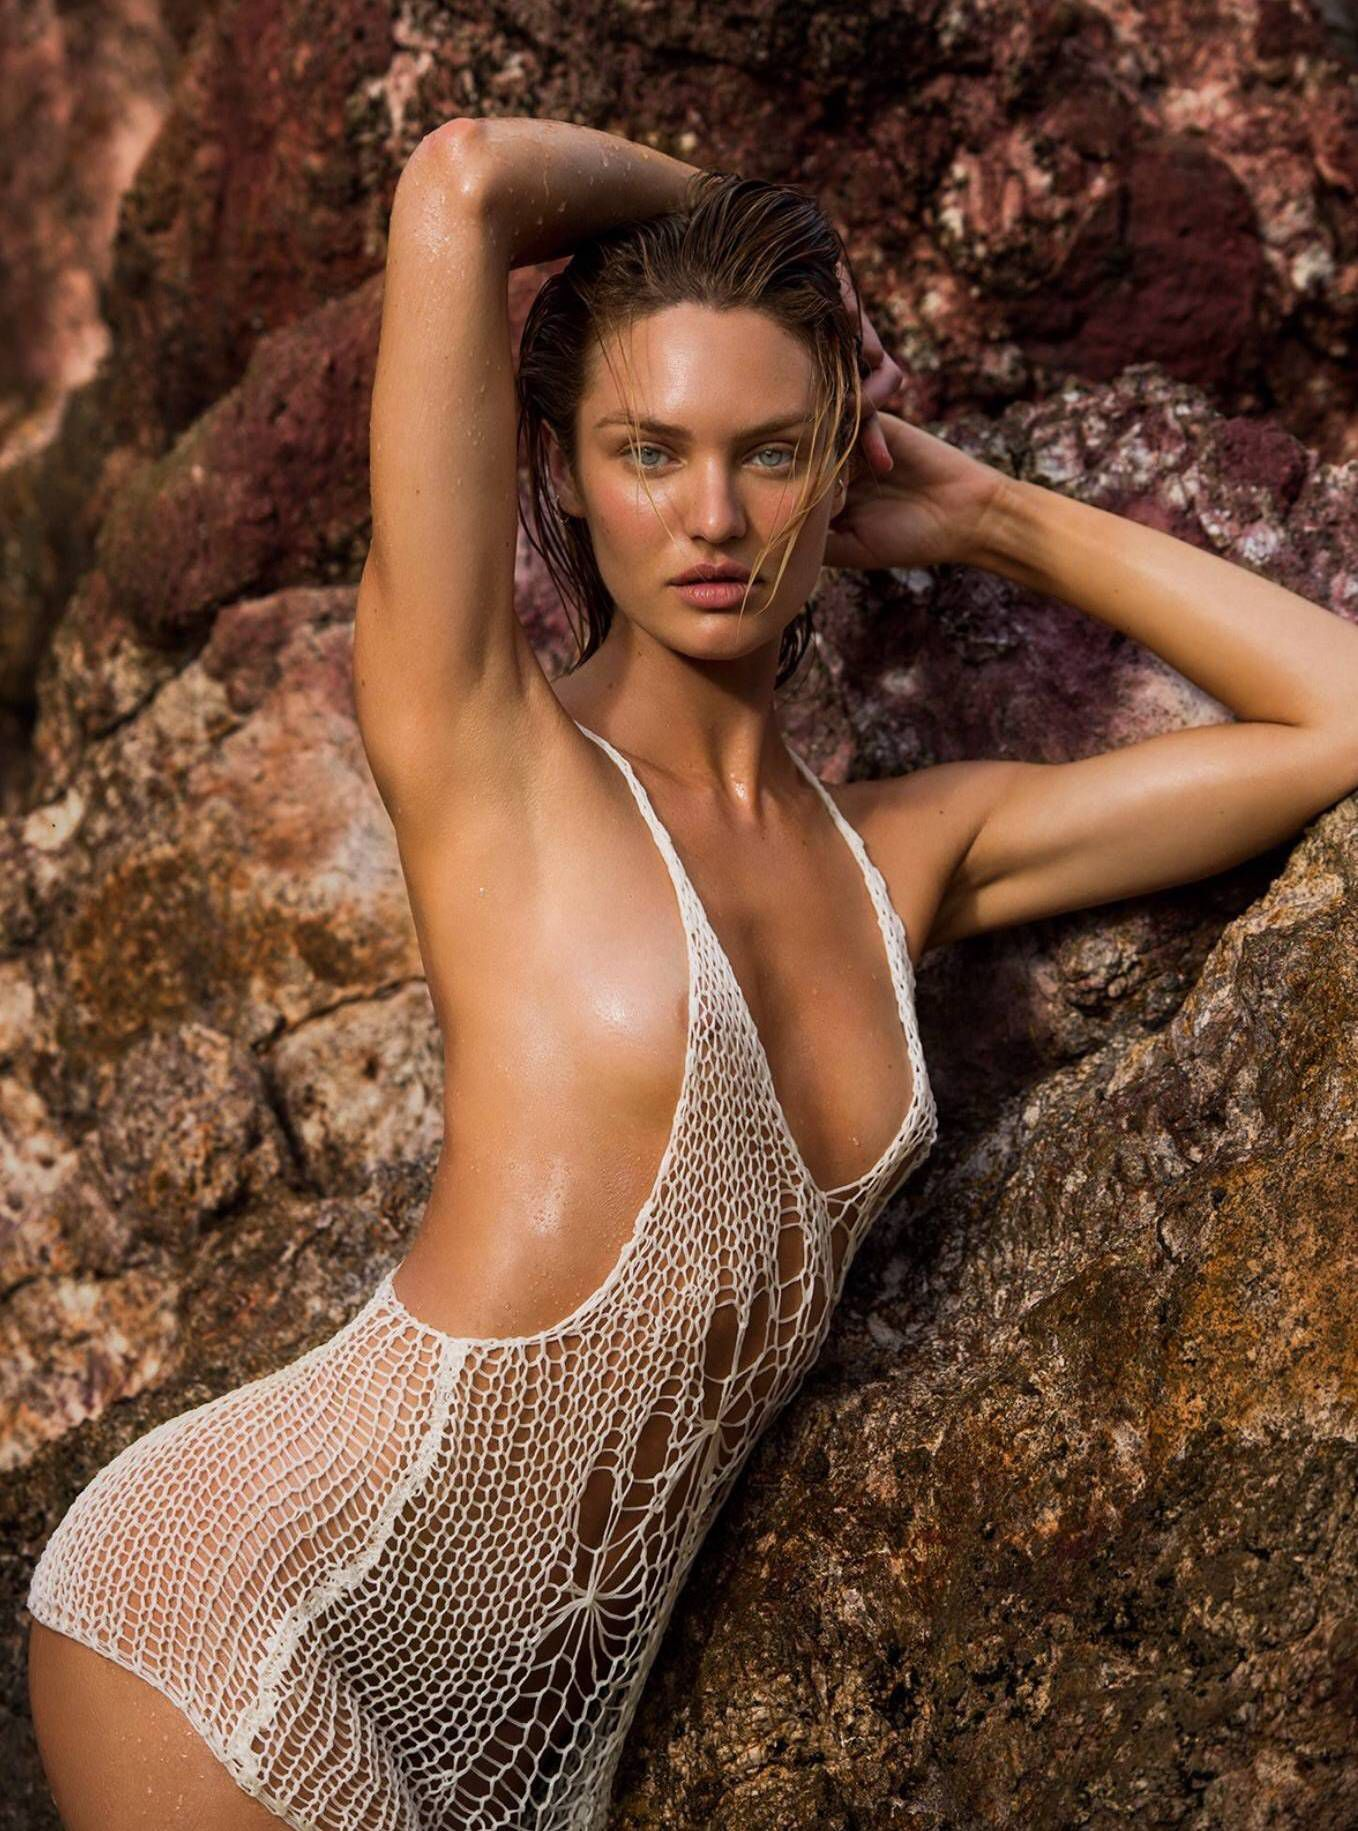 Outtakes candice swanepoel naked for maxim 7 Photos naked (32 photos), Cleavage Celebrites photos